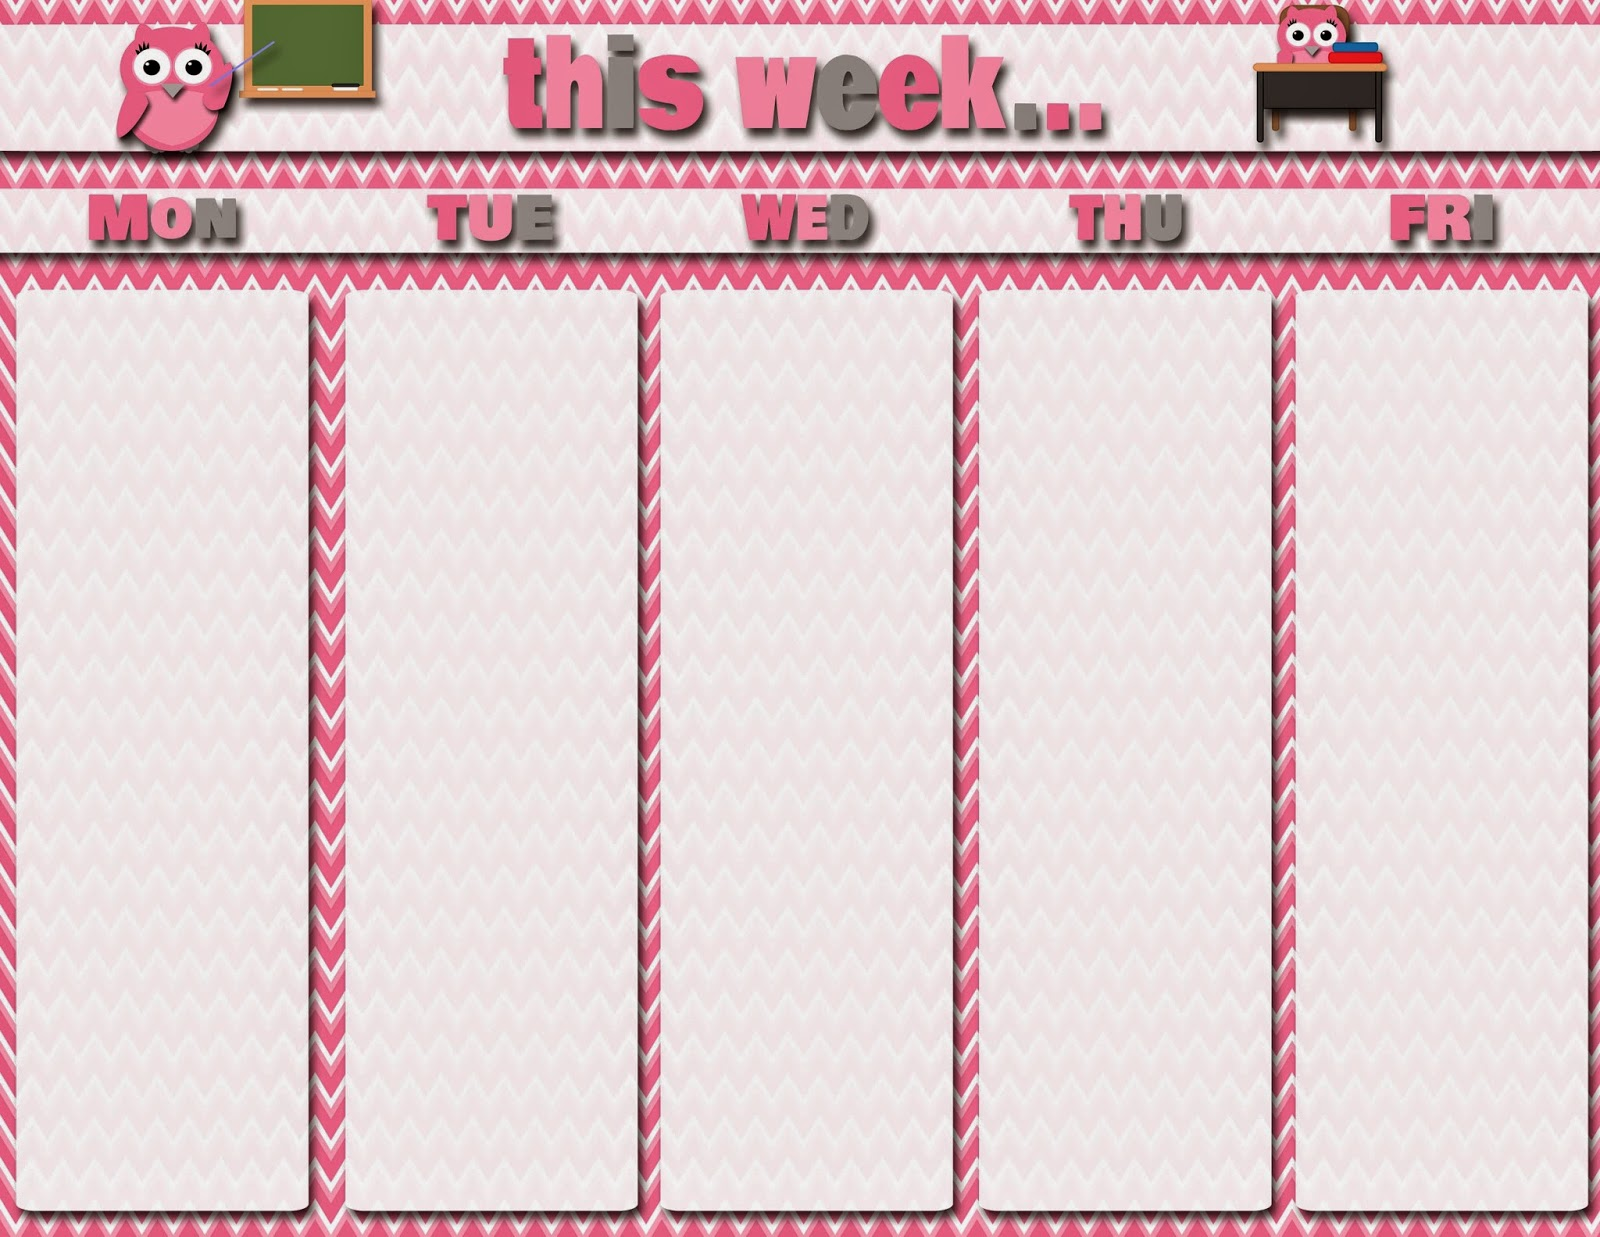 Calendar Girly : My fashionable designs free printables teacher and